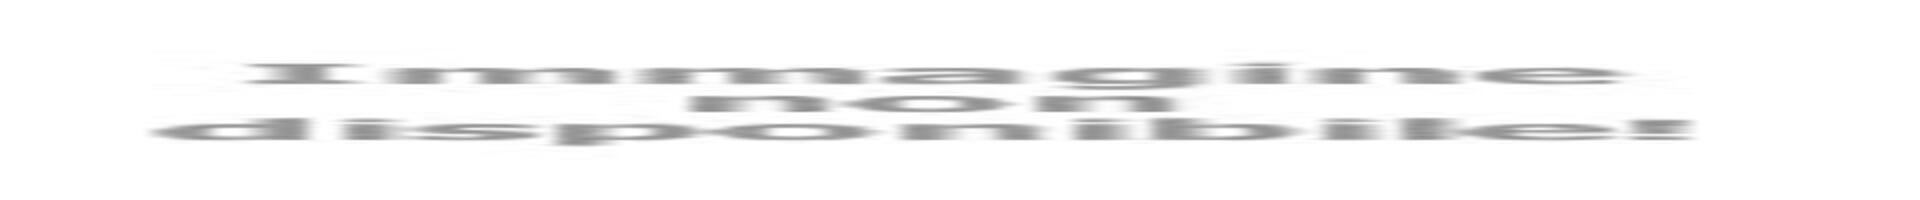 blumenhotel en offer-mid-june-in-3-star-hotel-in-viserba-directly-on-the-sea 015